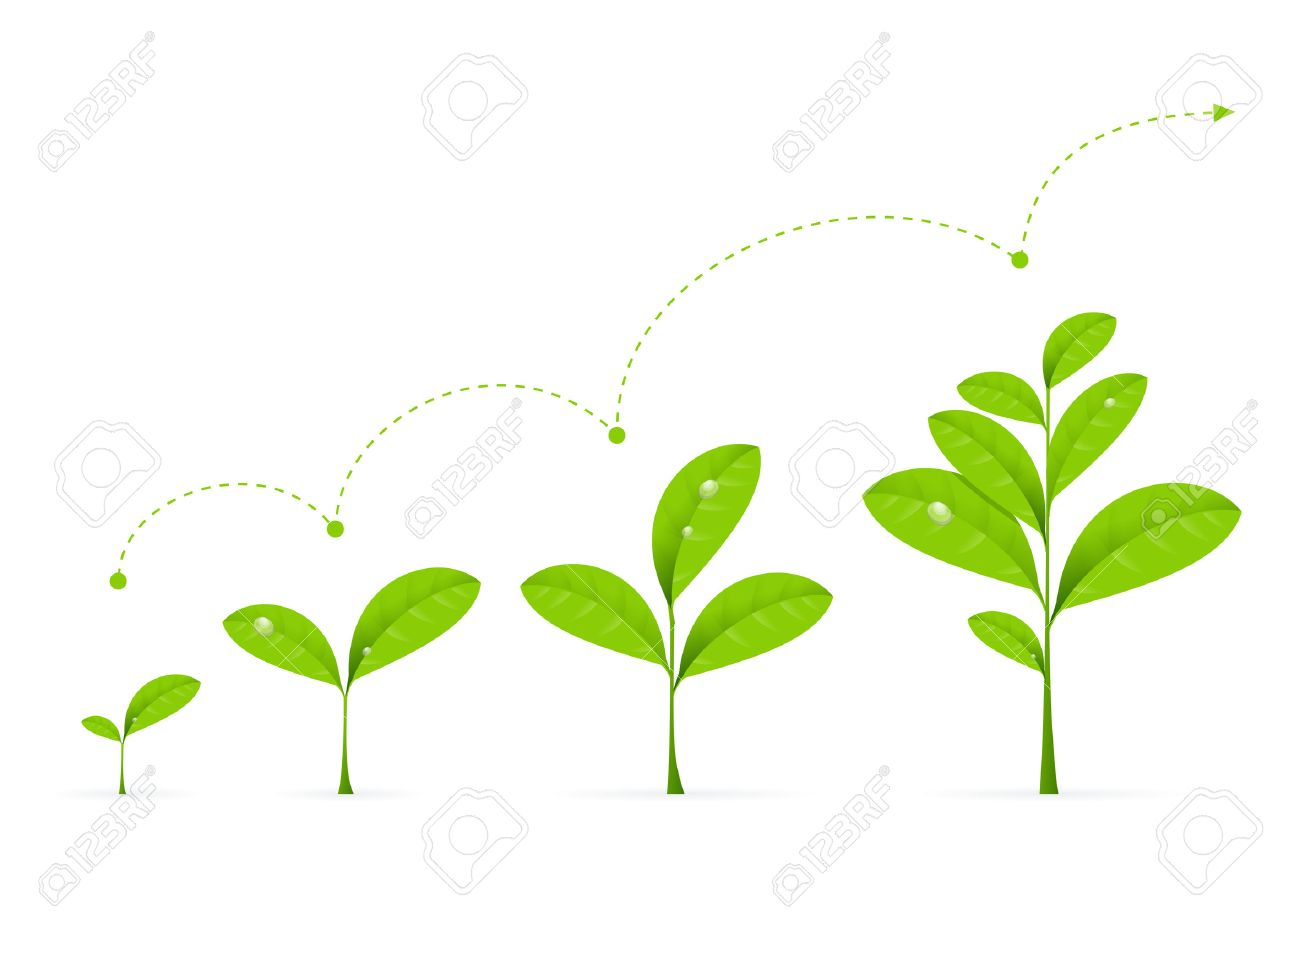 Phases Green Plant Growing. Concept Development Vector illustration - 66813418